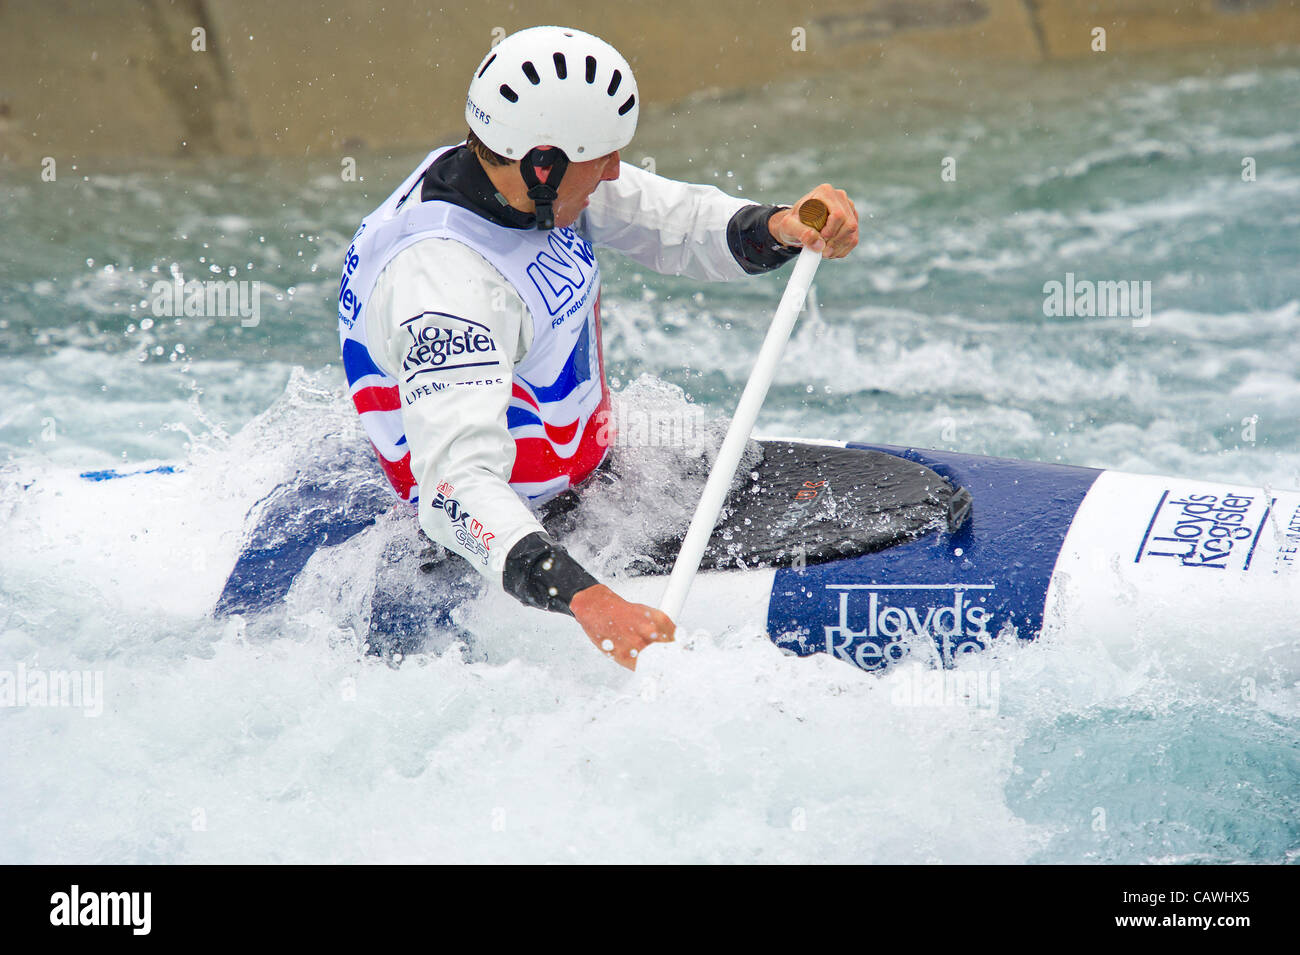 David Florence Silver Medalist In Canoe 1 Last Olympics The British Olympic Association BOA Announce First Group Of Athletes Nominated By